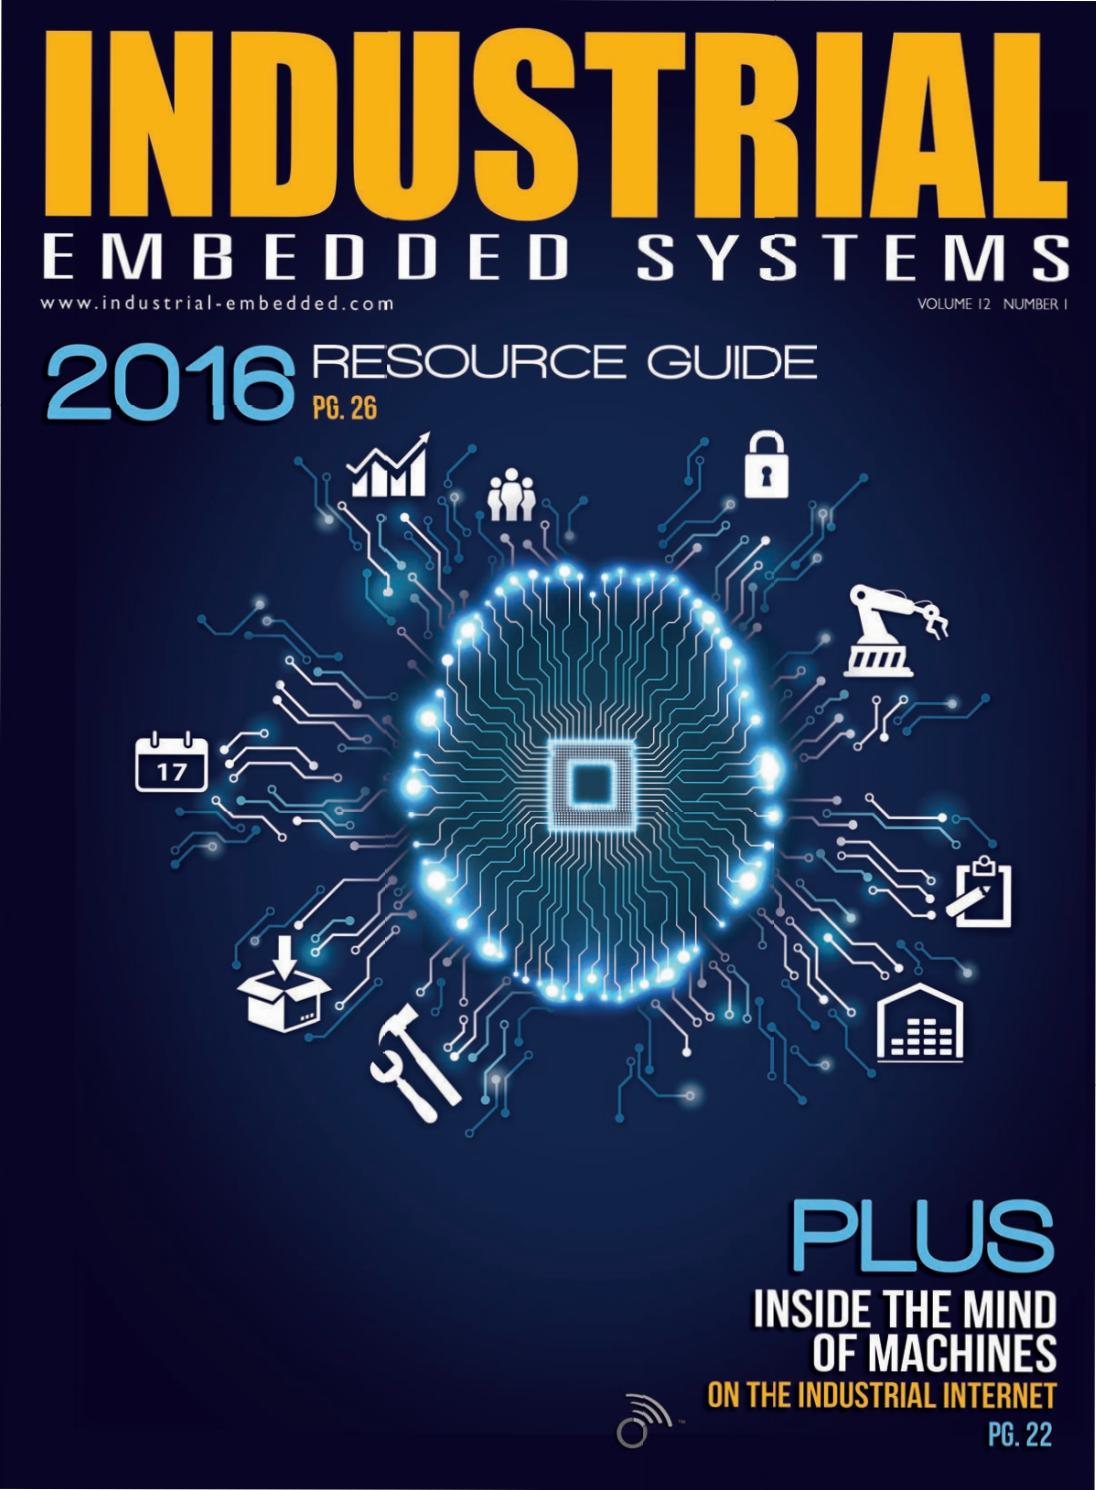 Industrial Embedded Systems With Resource Guide 2016 By Opensystems Simple Infrared Control Extender Eeweb Community Media Issuu